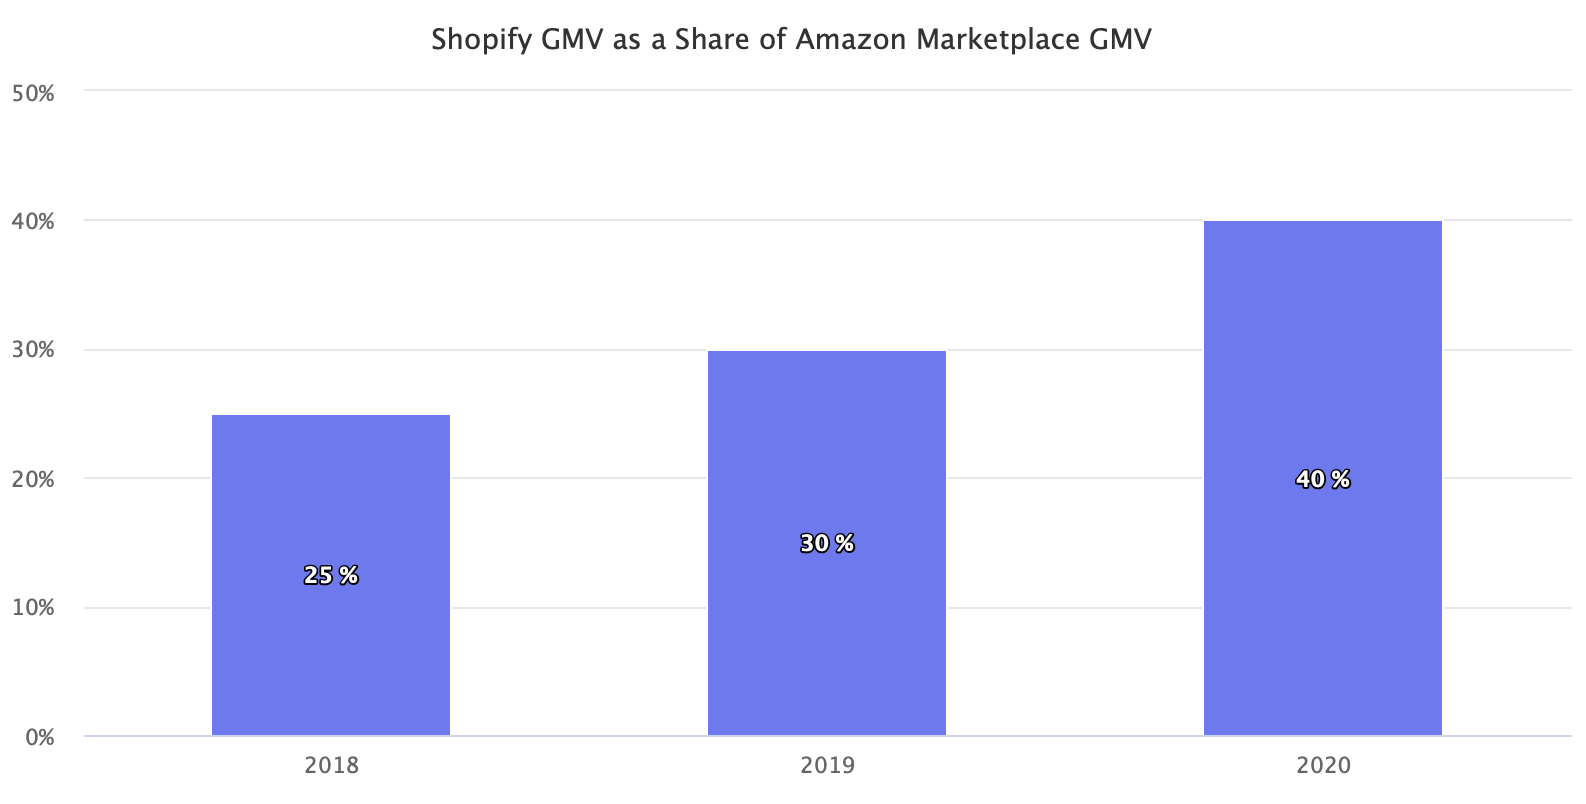 Shopify GMV as a Share of Amazon Marketplace GMV